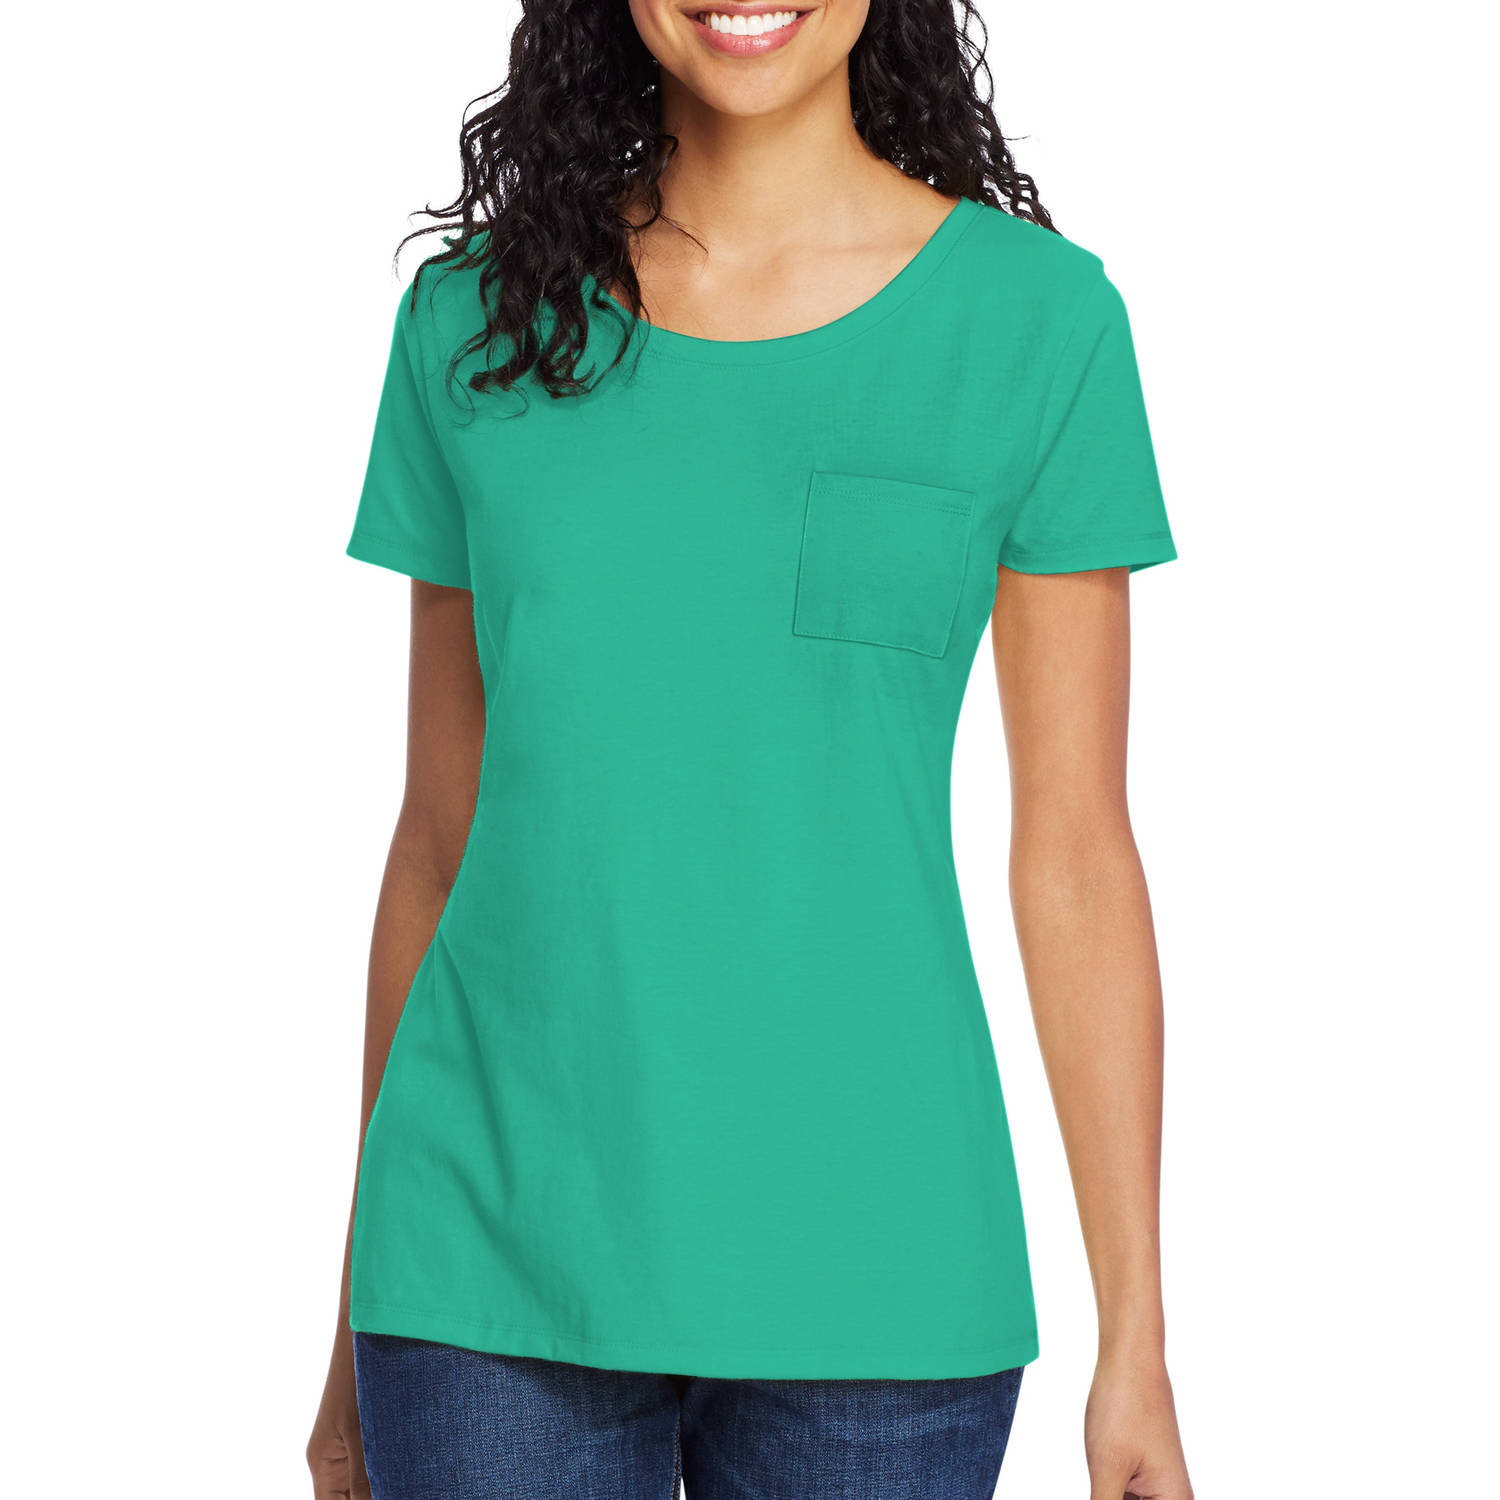 Hanes Women's Lightweight Short Sleeve Scoopneck Pocket T-Shirt